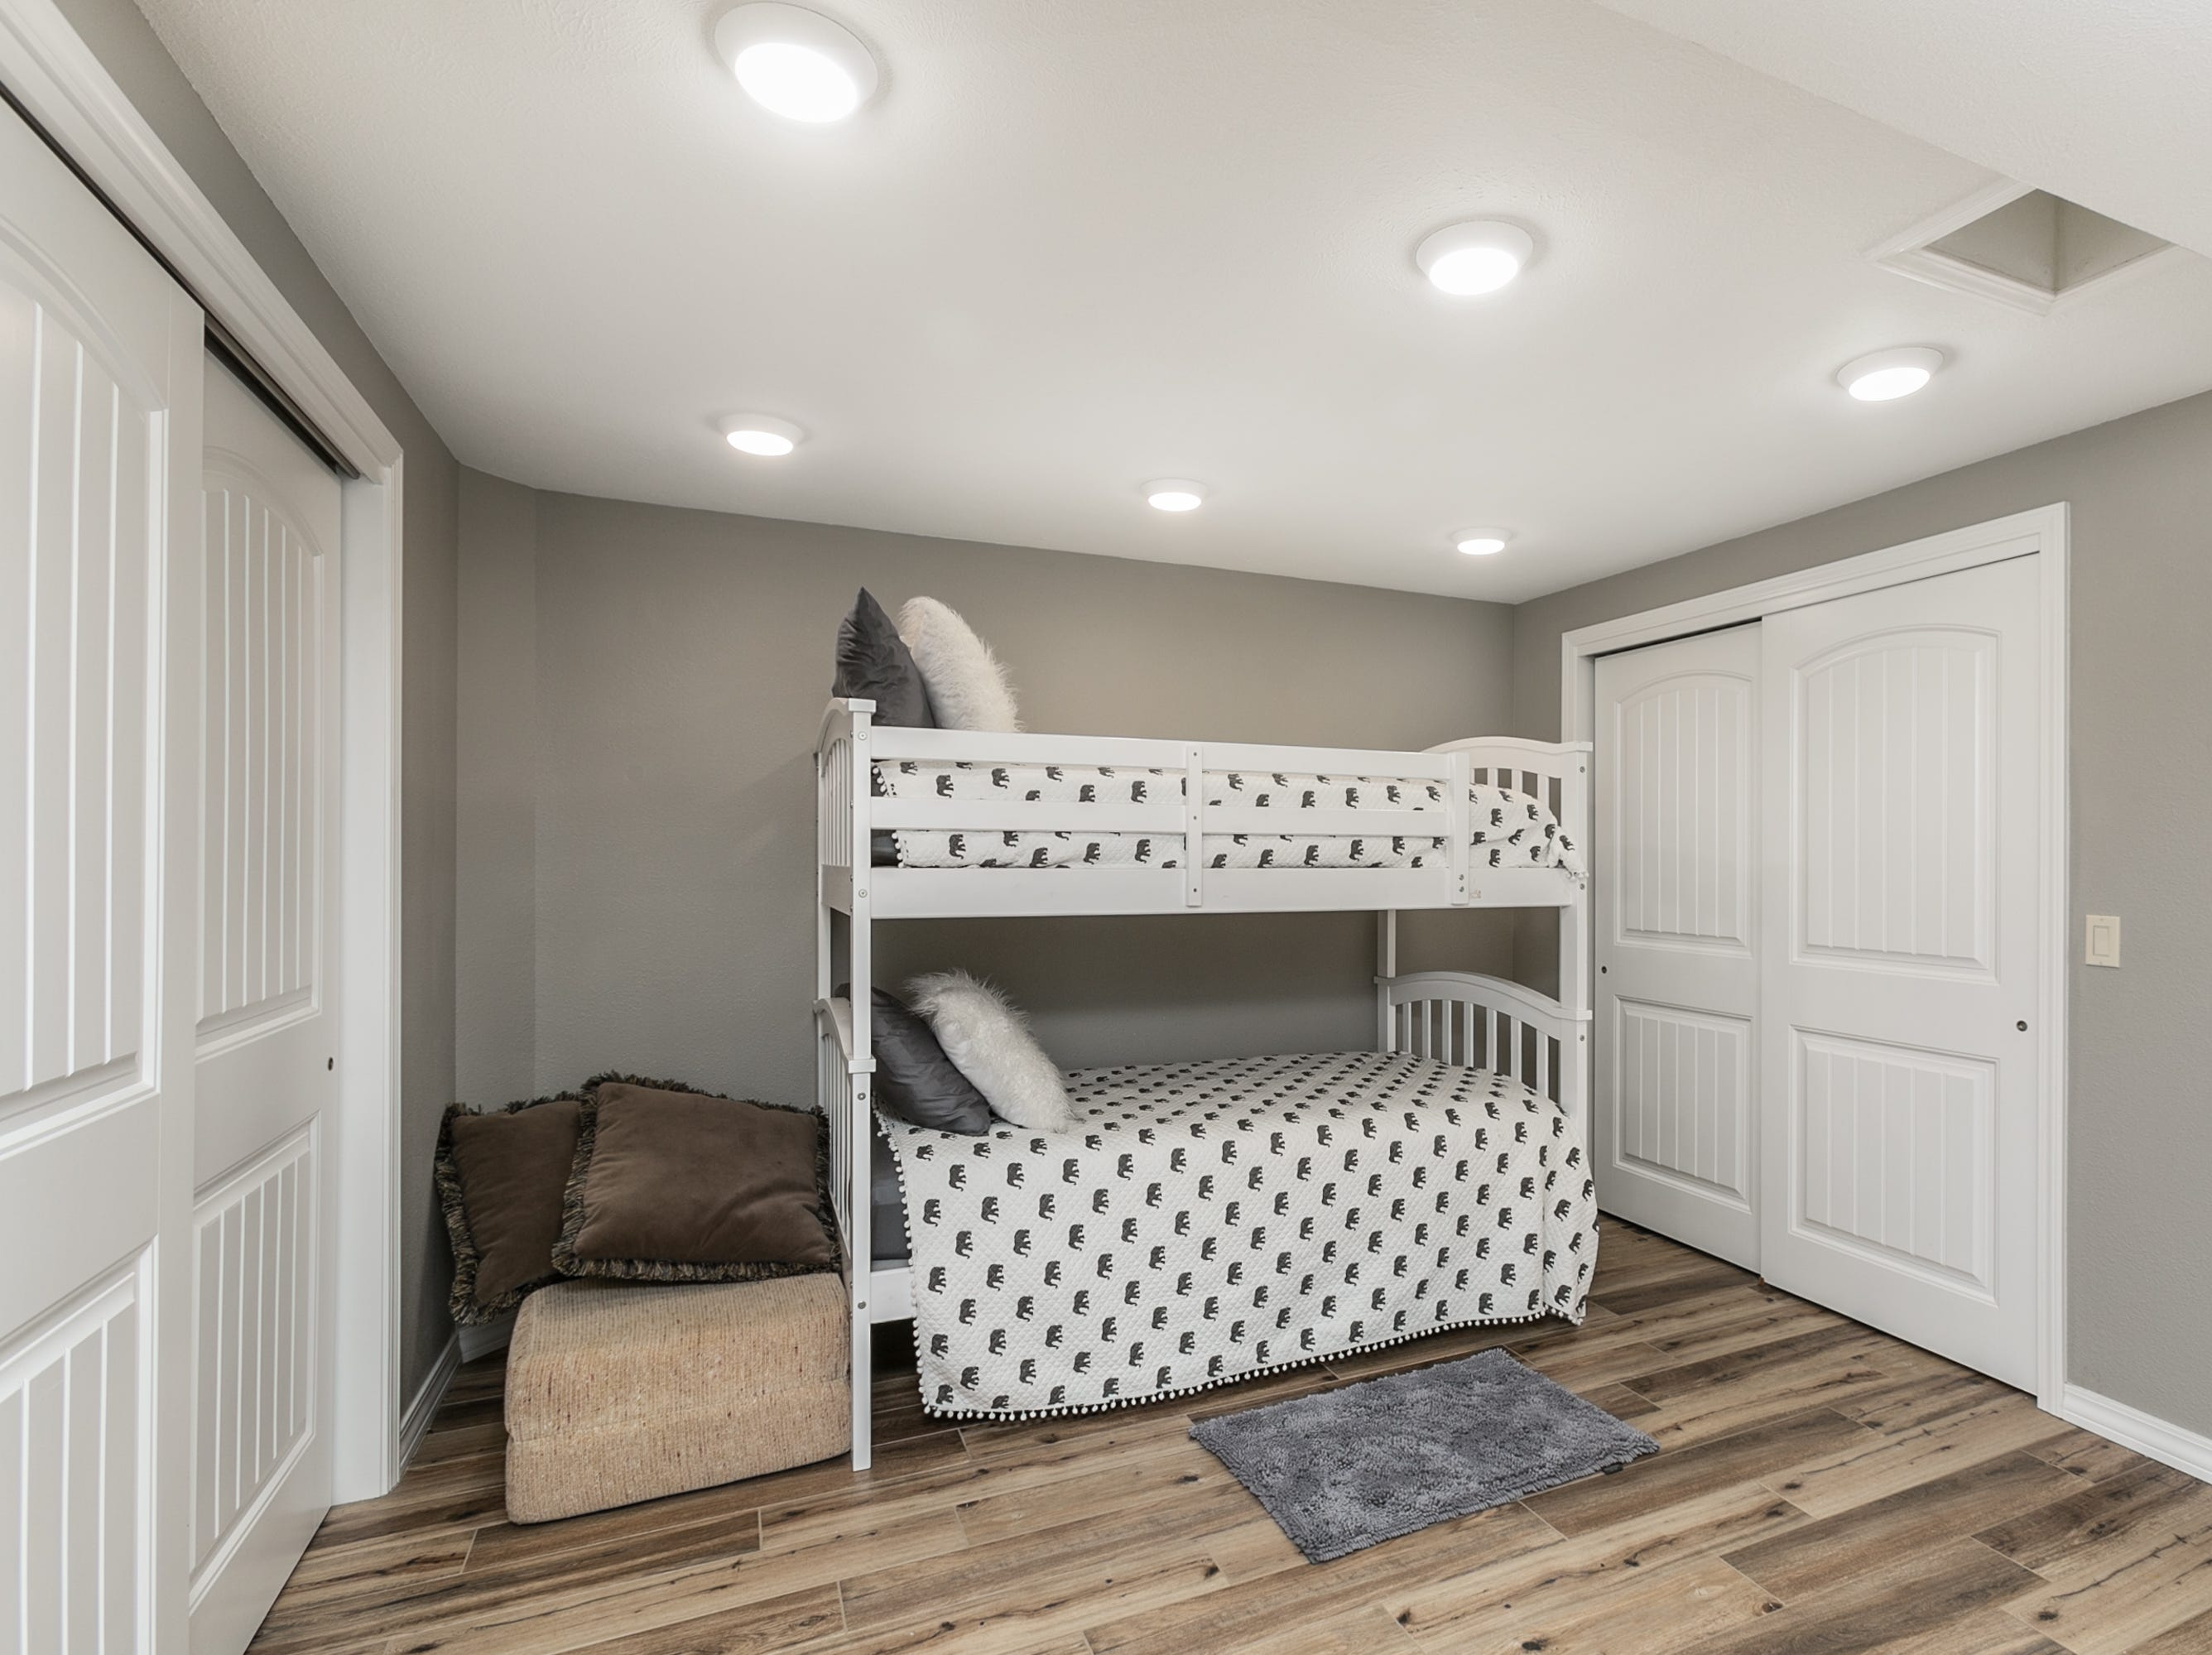 The Kembells put extra space in the laundry room to use, with bunk beds for their grandchildren when they visit.